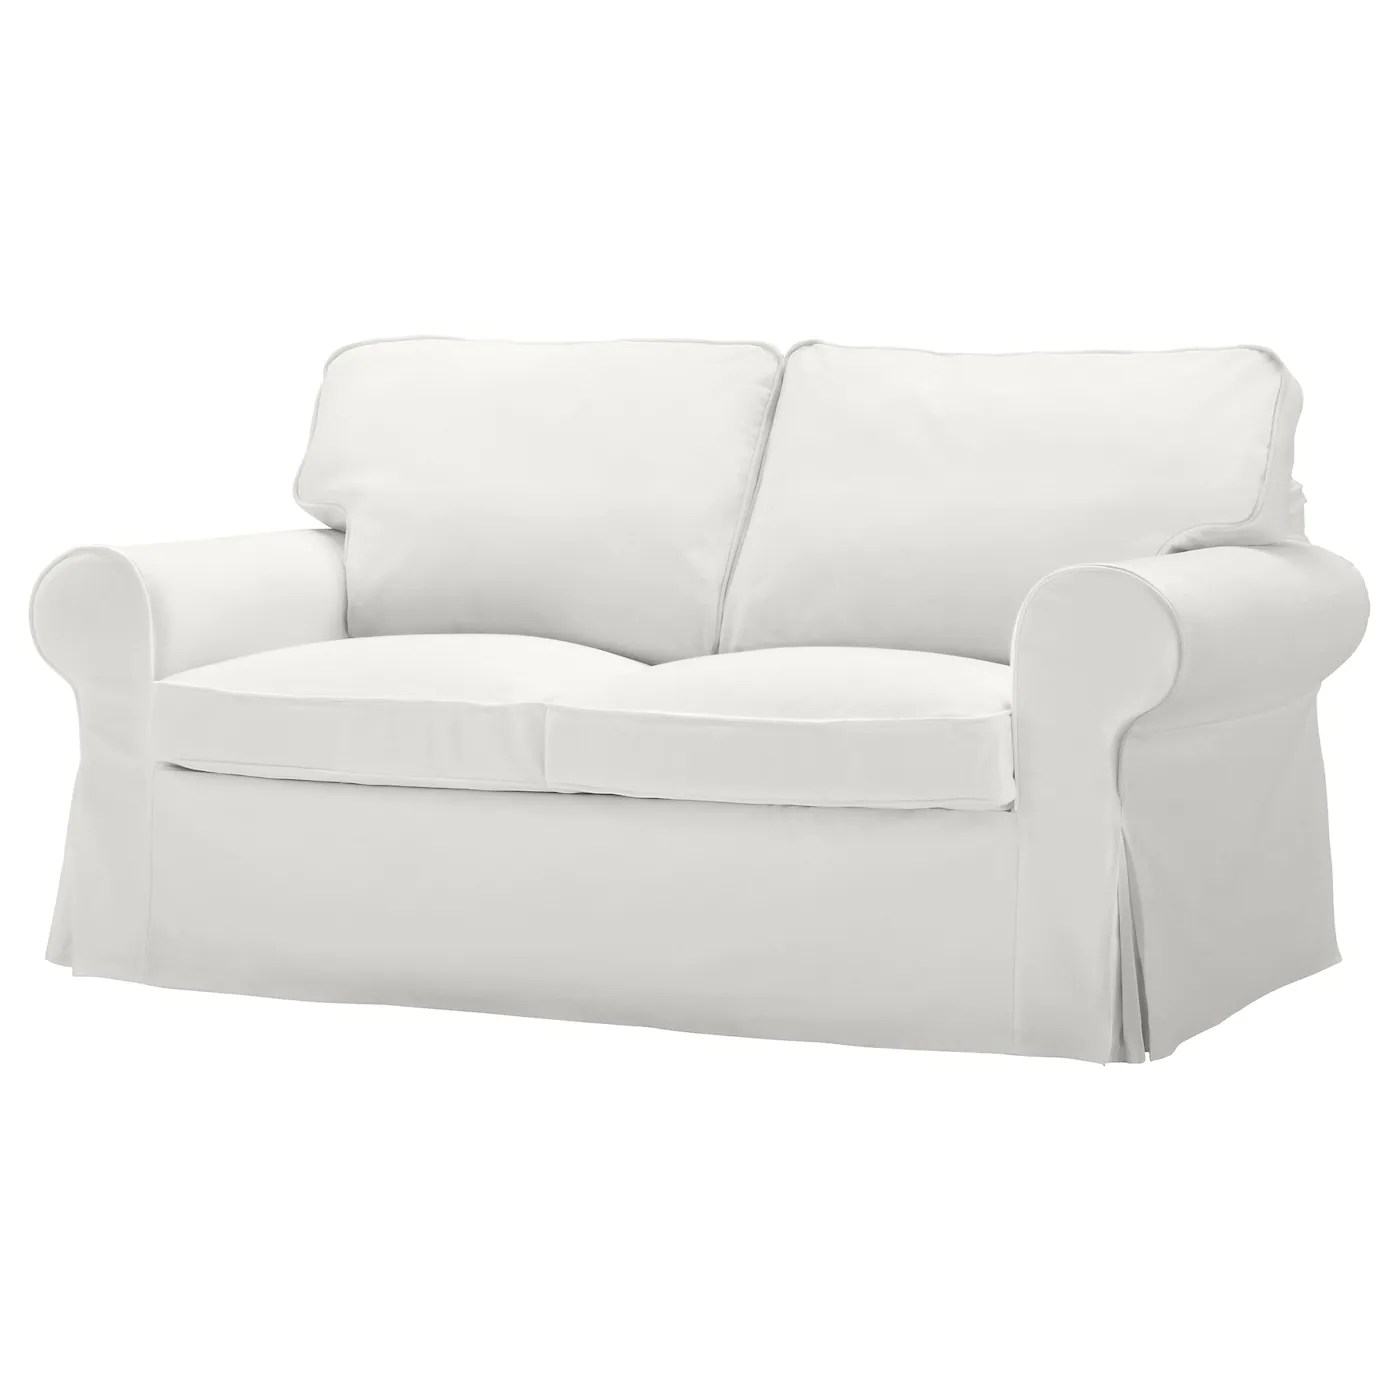 www.ikea chair covers antique barber chairs for sale ektorp cover two seat sofa blekinge white ikea